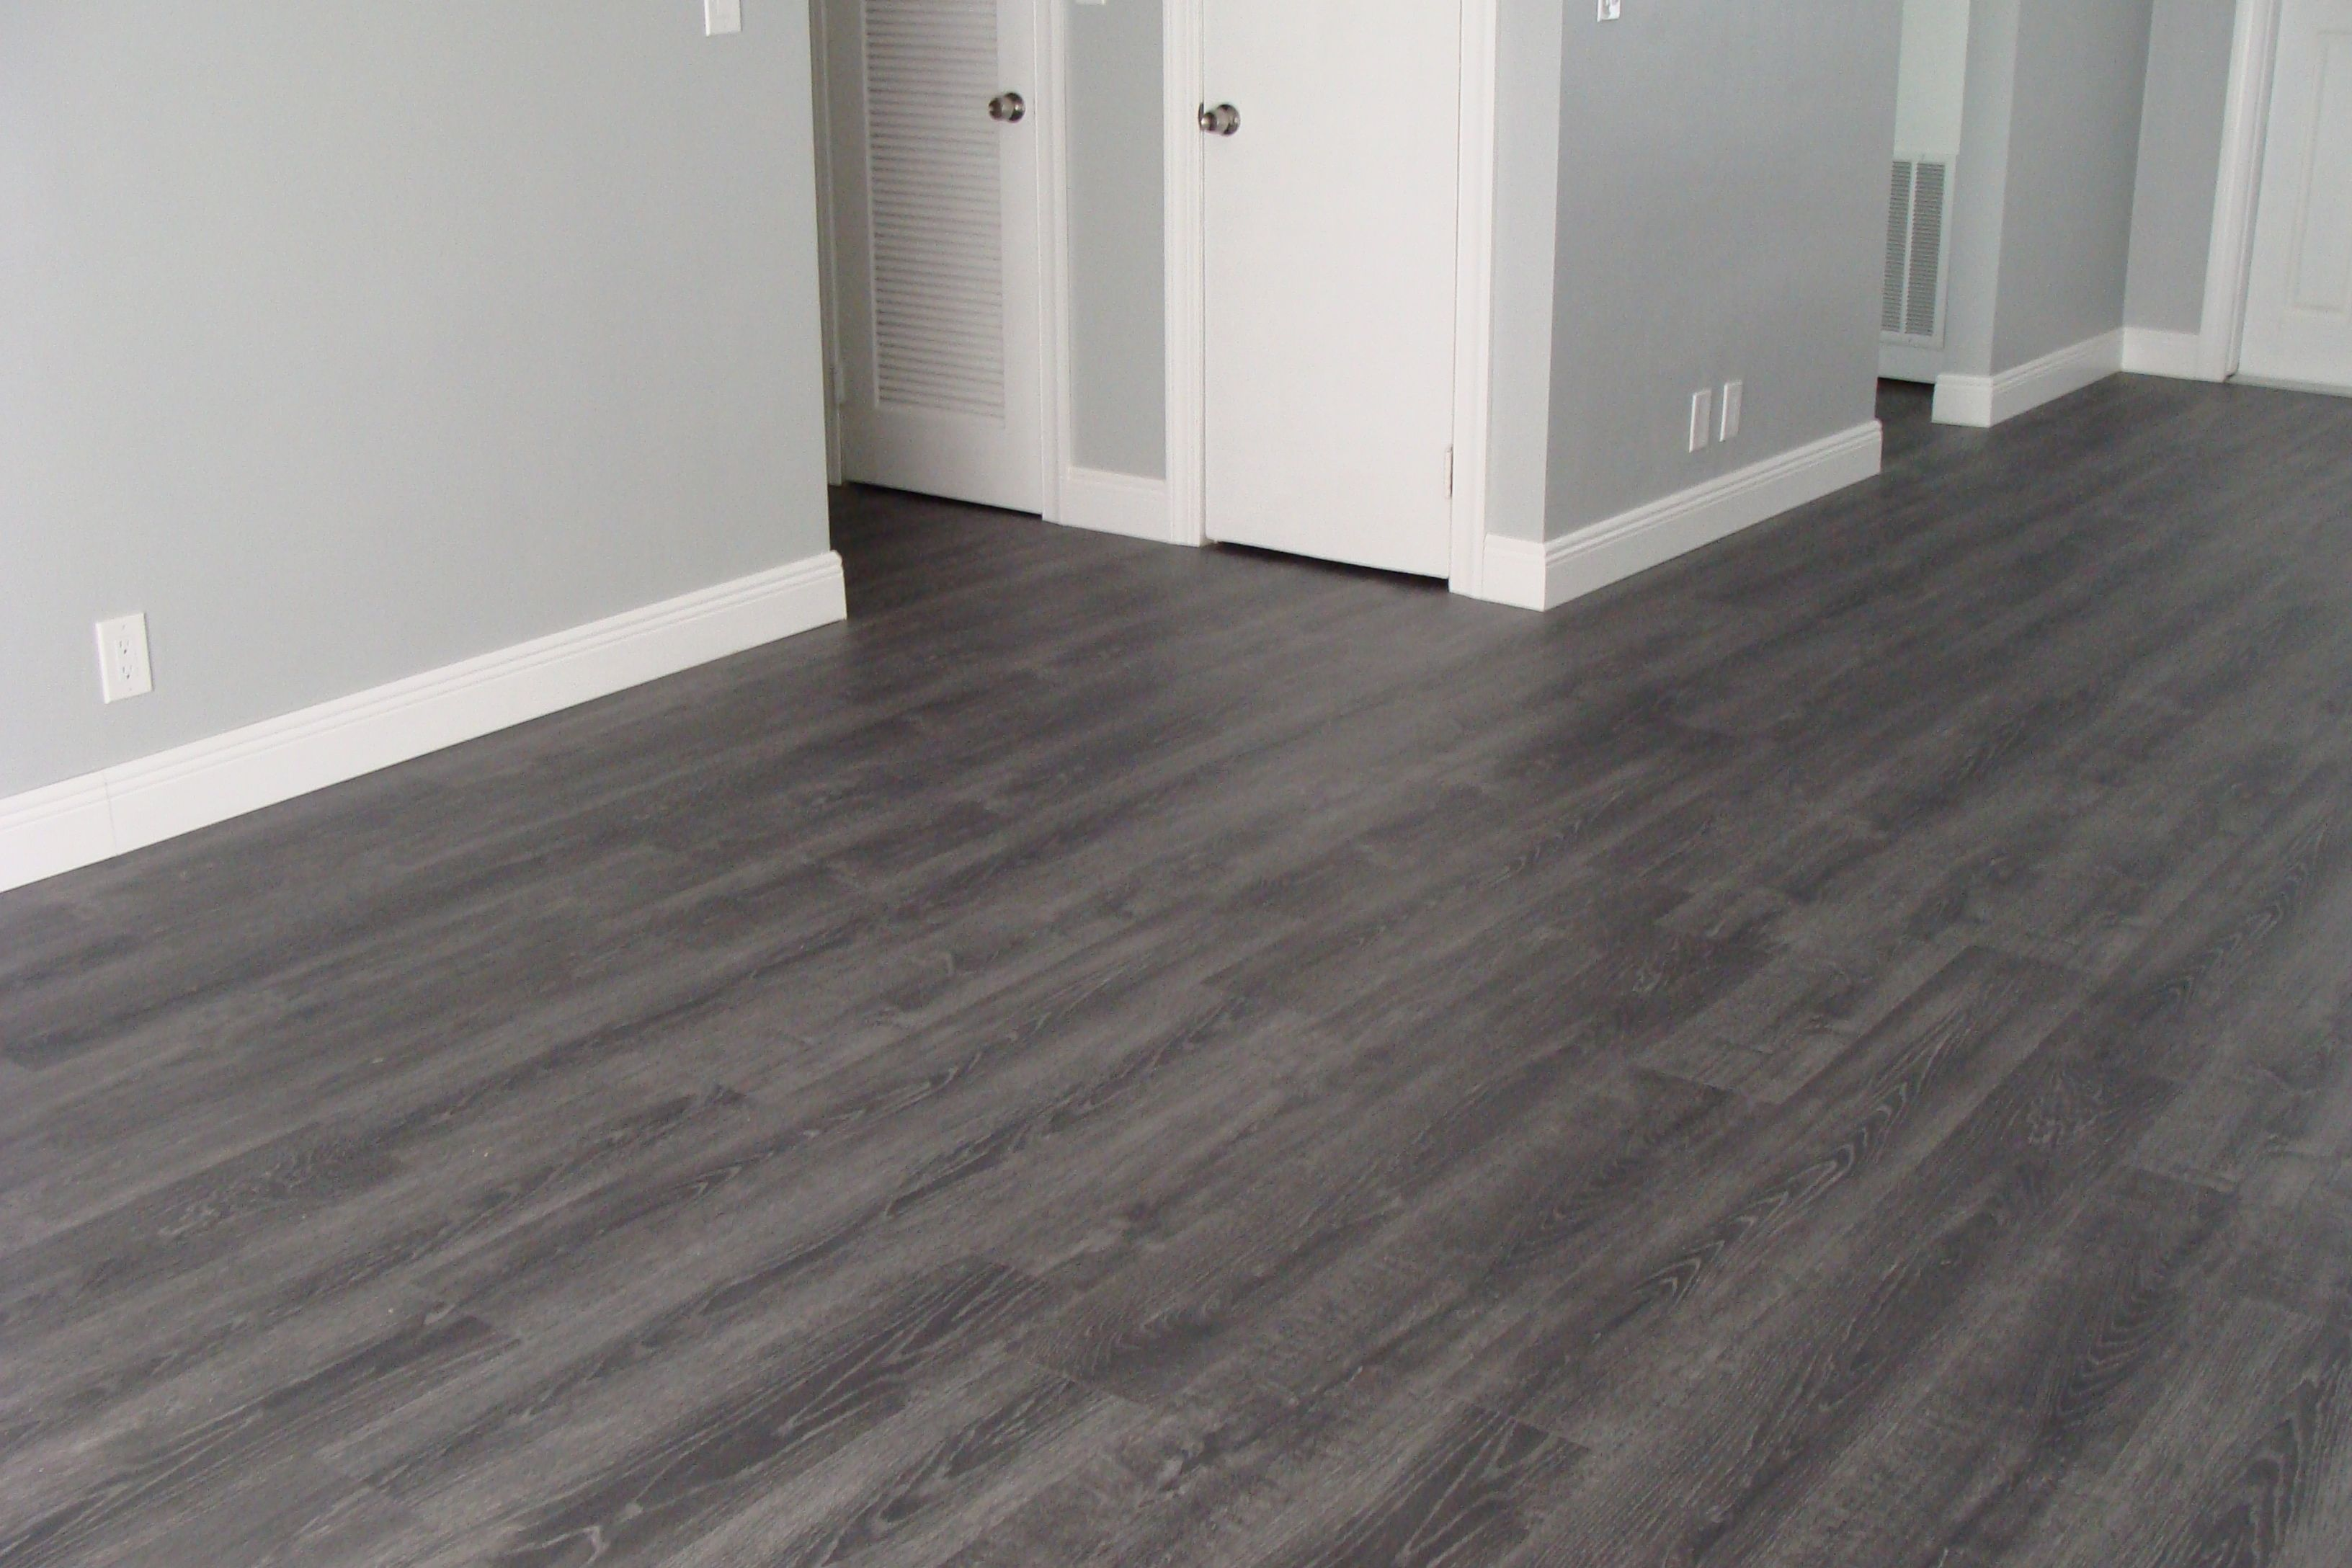 Tokyo Oak Grey Laminate Is The Perfect Complement In Vincent S S Home Laminate Grey Flooring Mo Grey Laminate Flooring Grey Hardwood Floors Grey Flooring